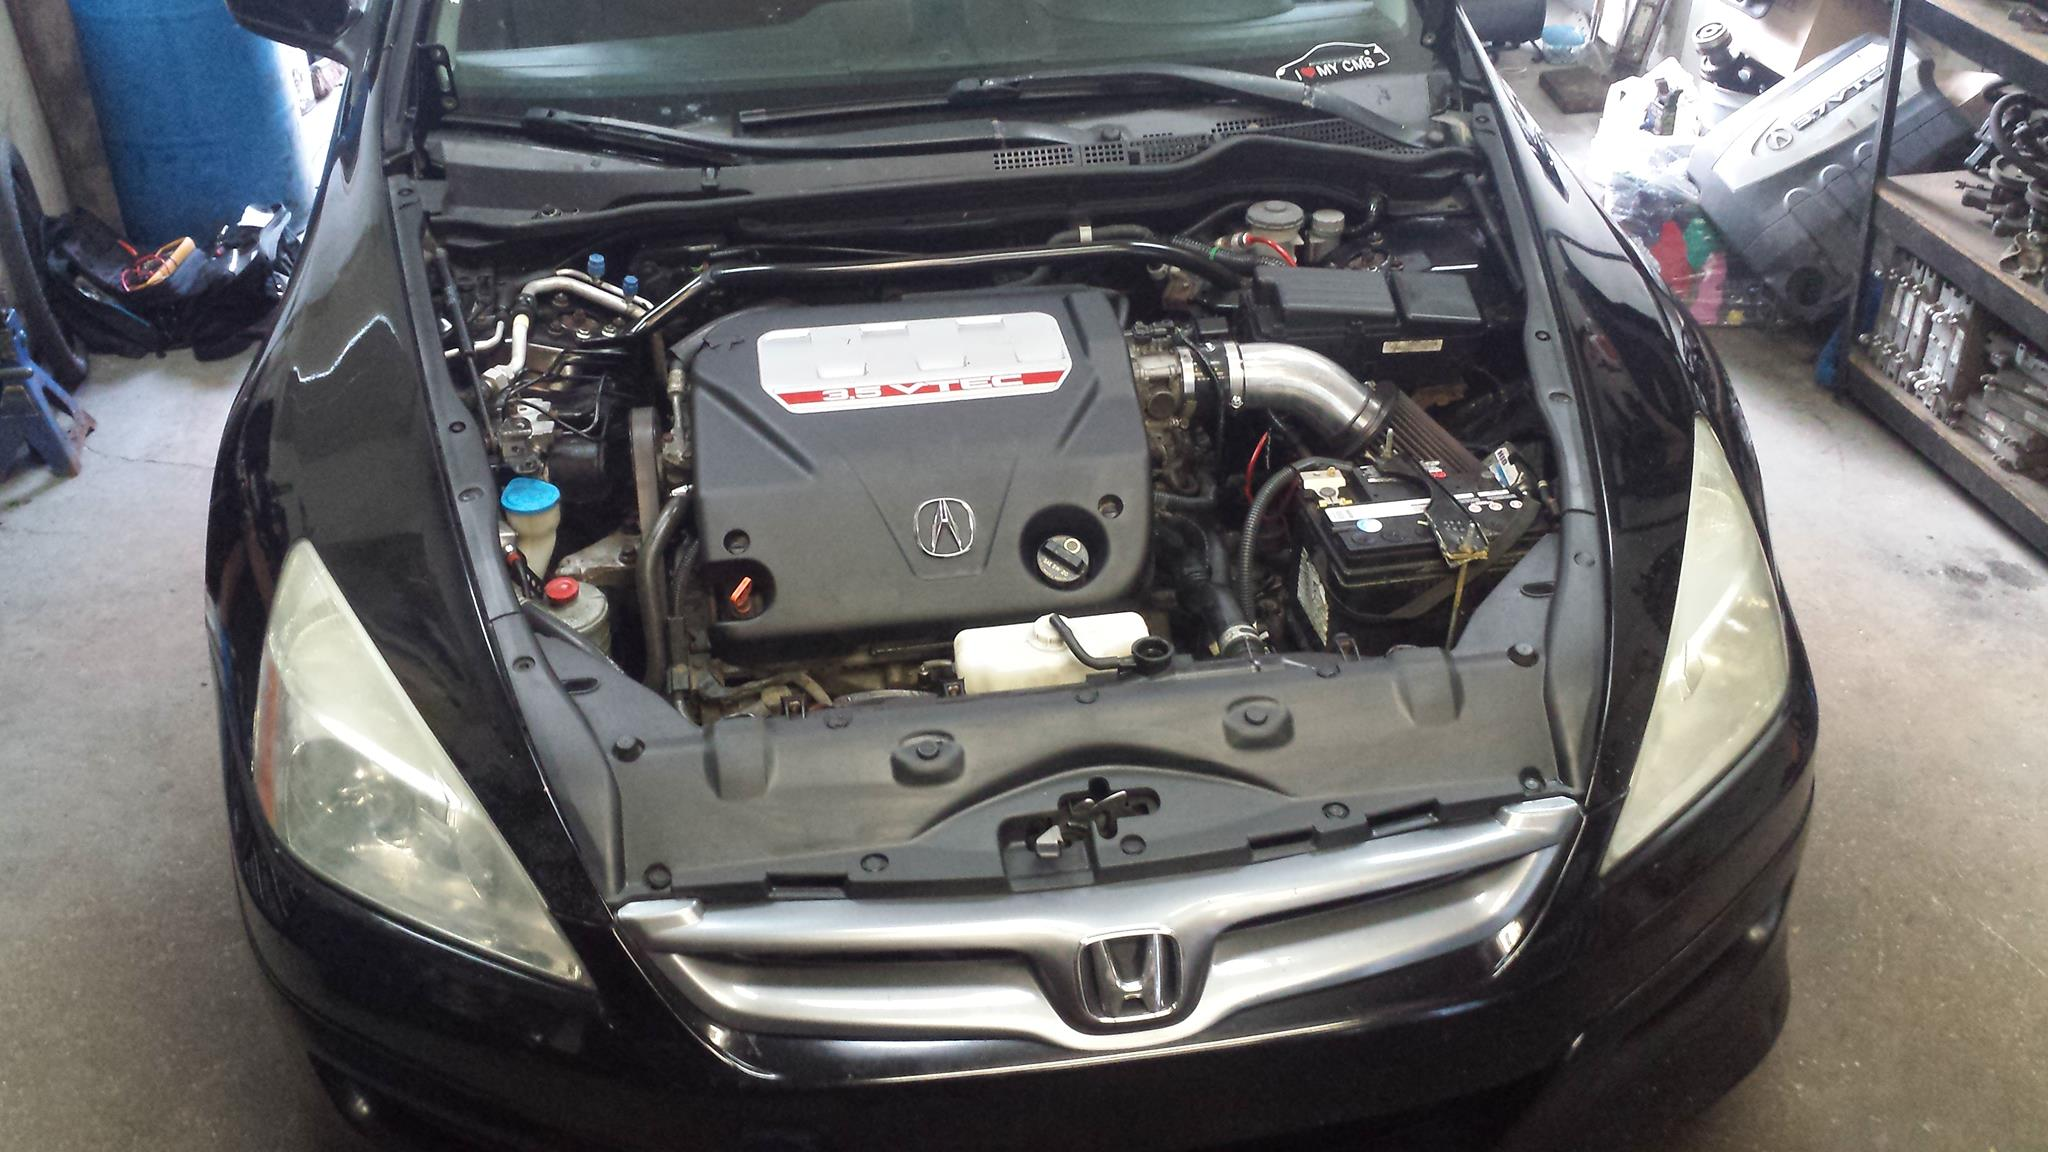 2006-accord-j35a8-2008-acura-tl-type-s-6